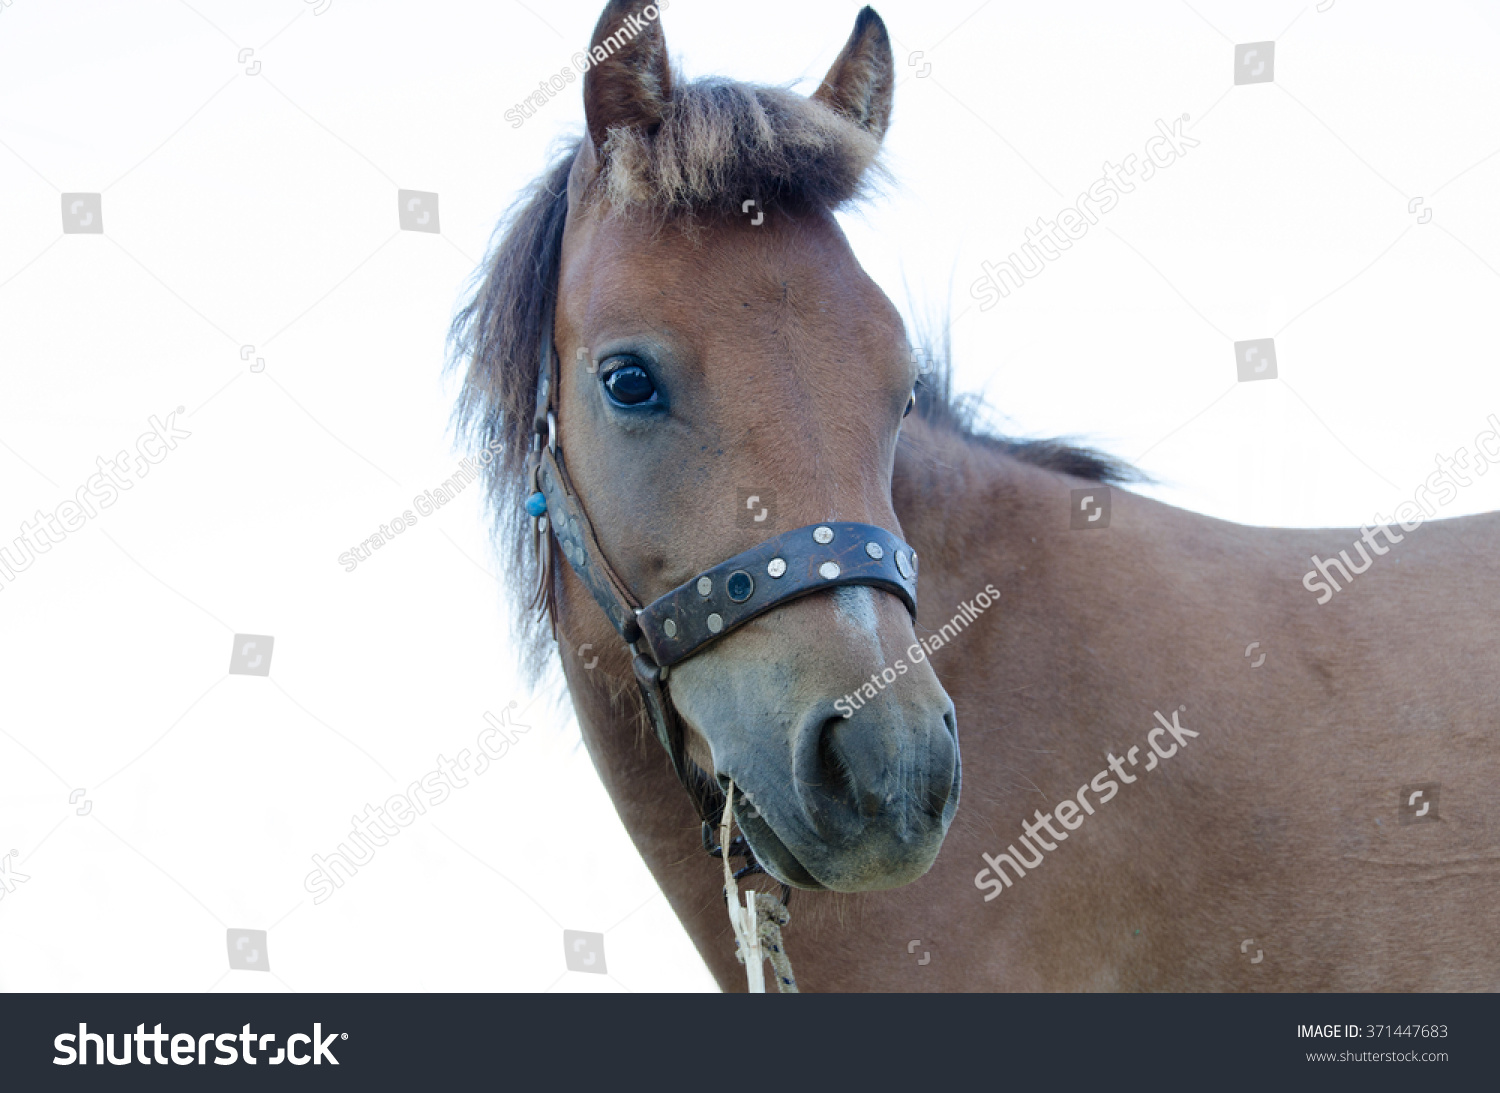 Small Bodied Greek Skyrian Horse One Stock Photo Edit Now 371447683